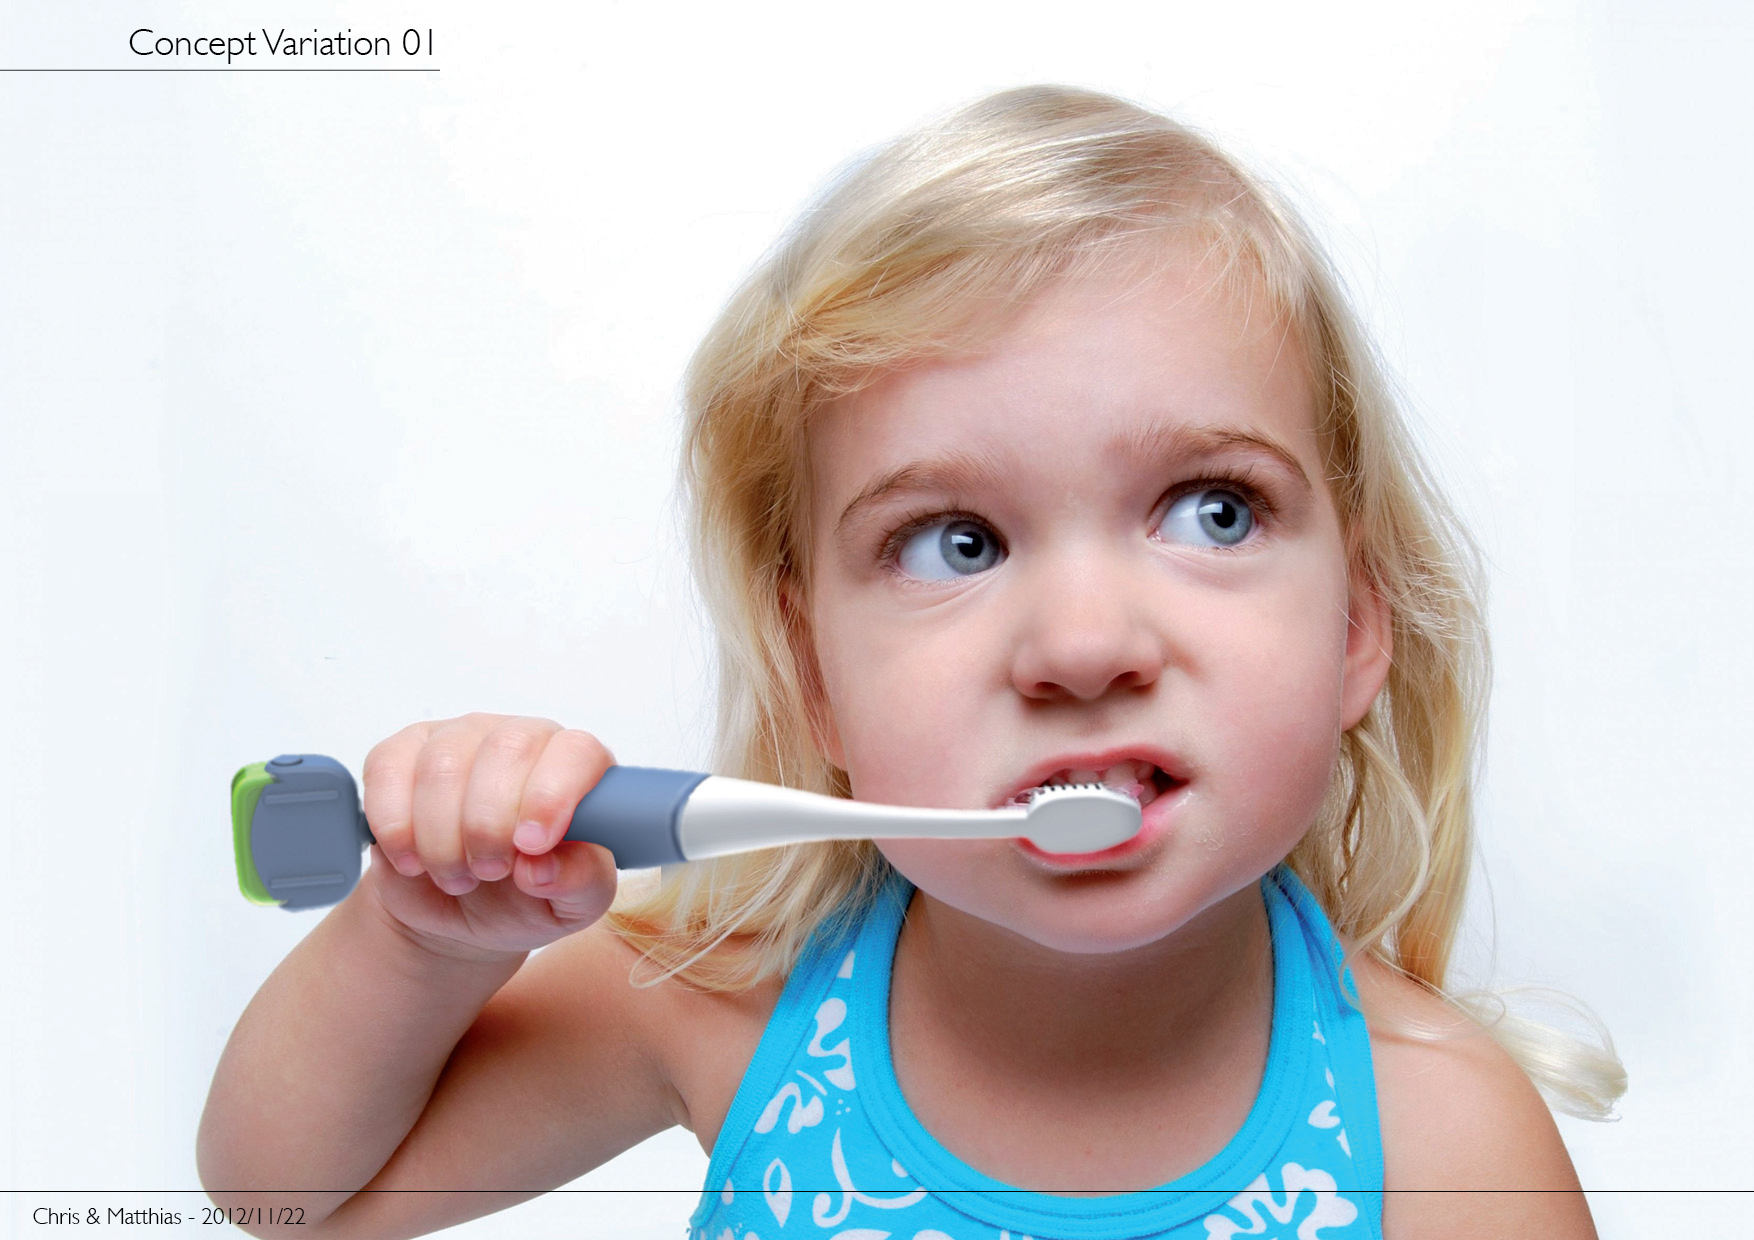 COLGATE  Gamified toothbrush for kids   View Portfolio >